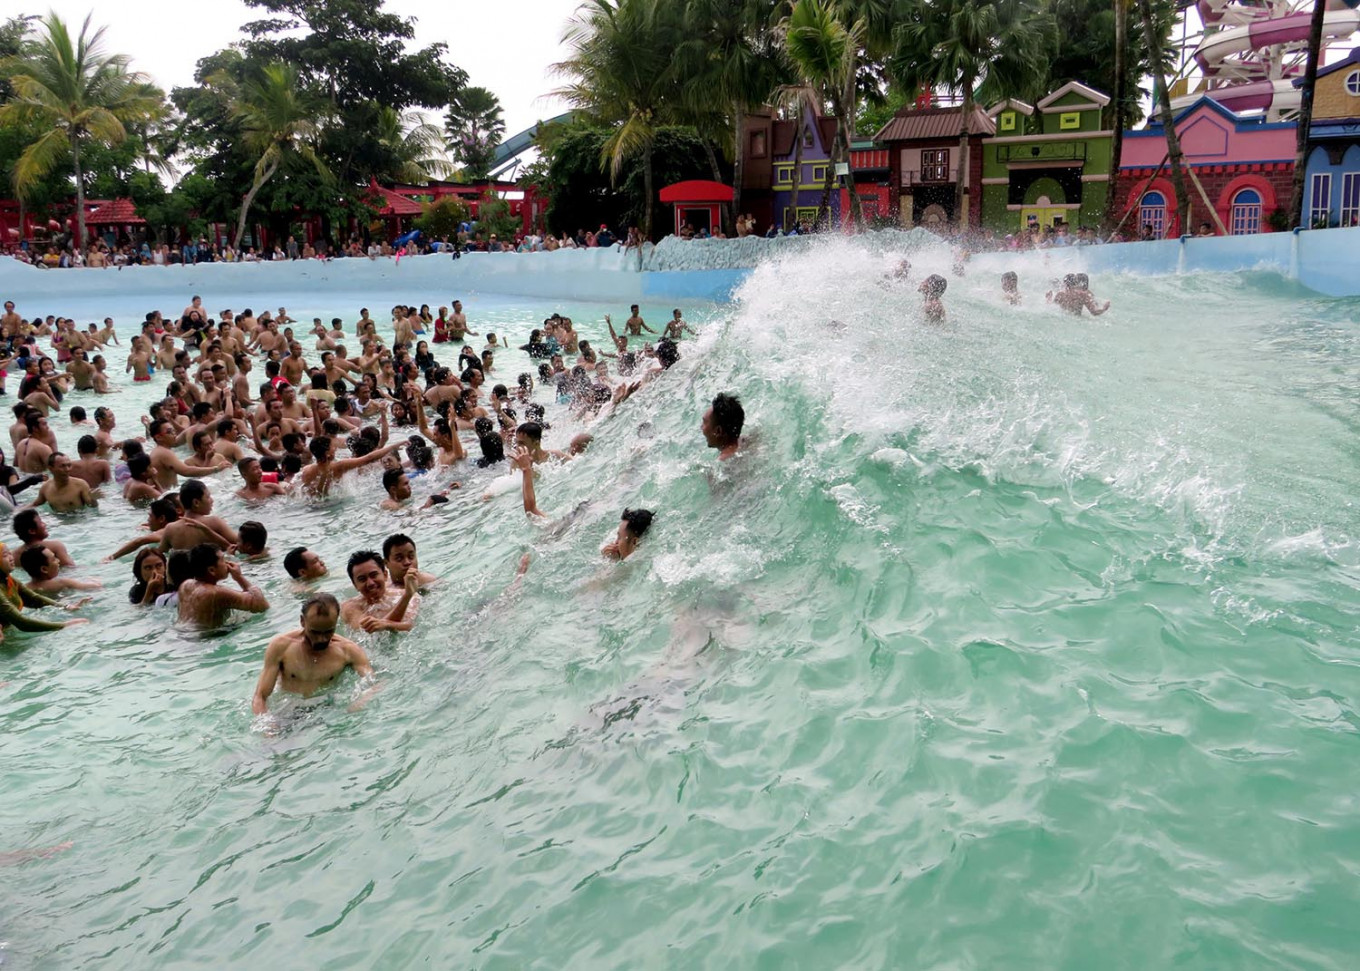 Wave riders: Visitors enjoy a wave pool at a water park in Malang, East Java, on Tuesday. JP/Nedi Putra AW